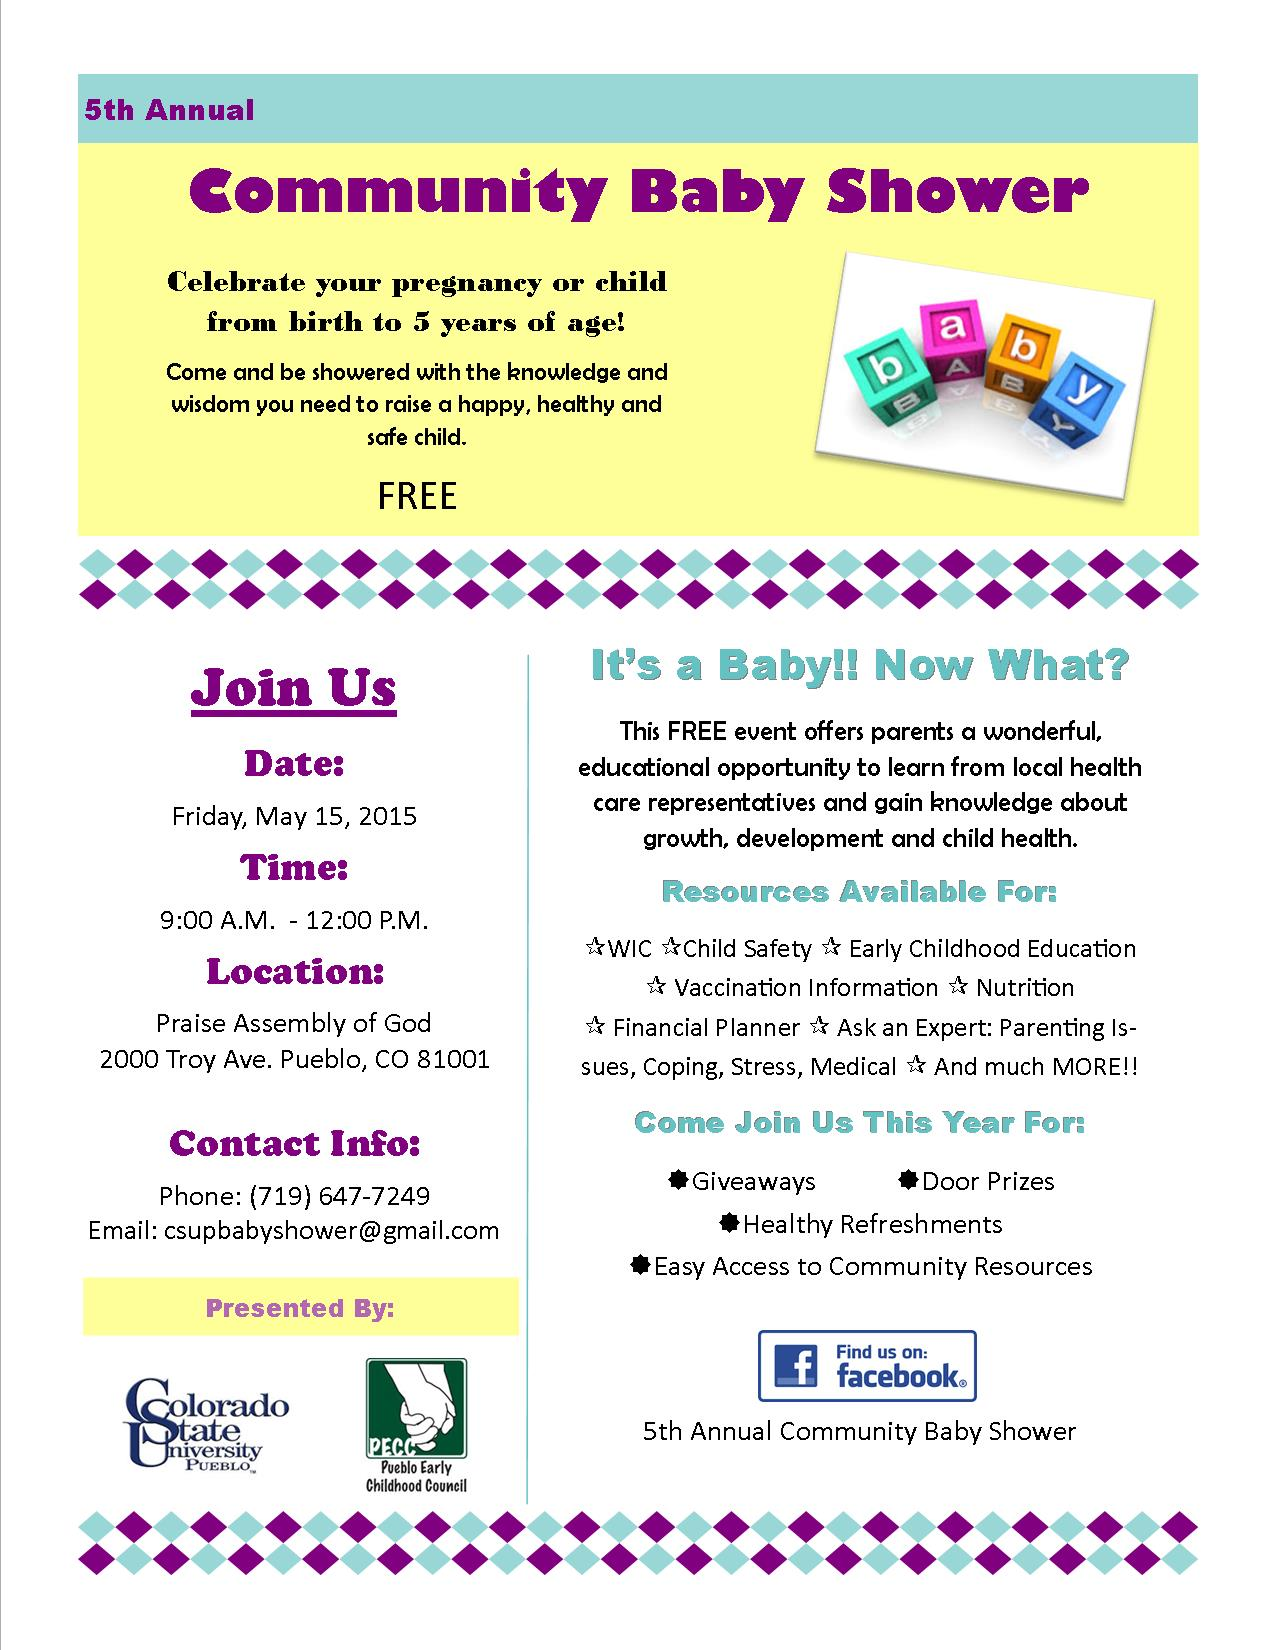 baby shower flyer with contact info